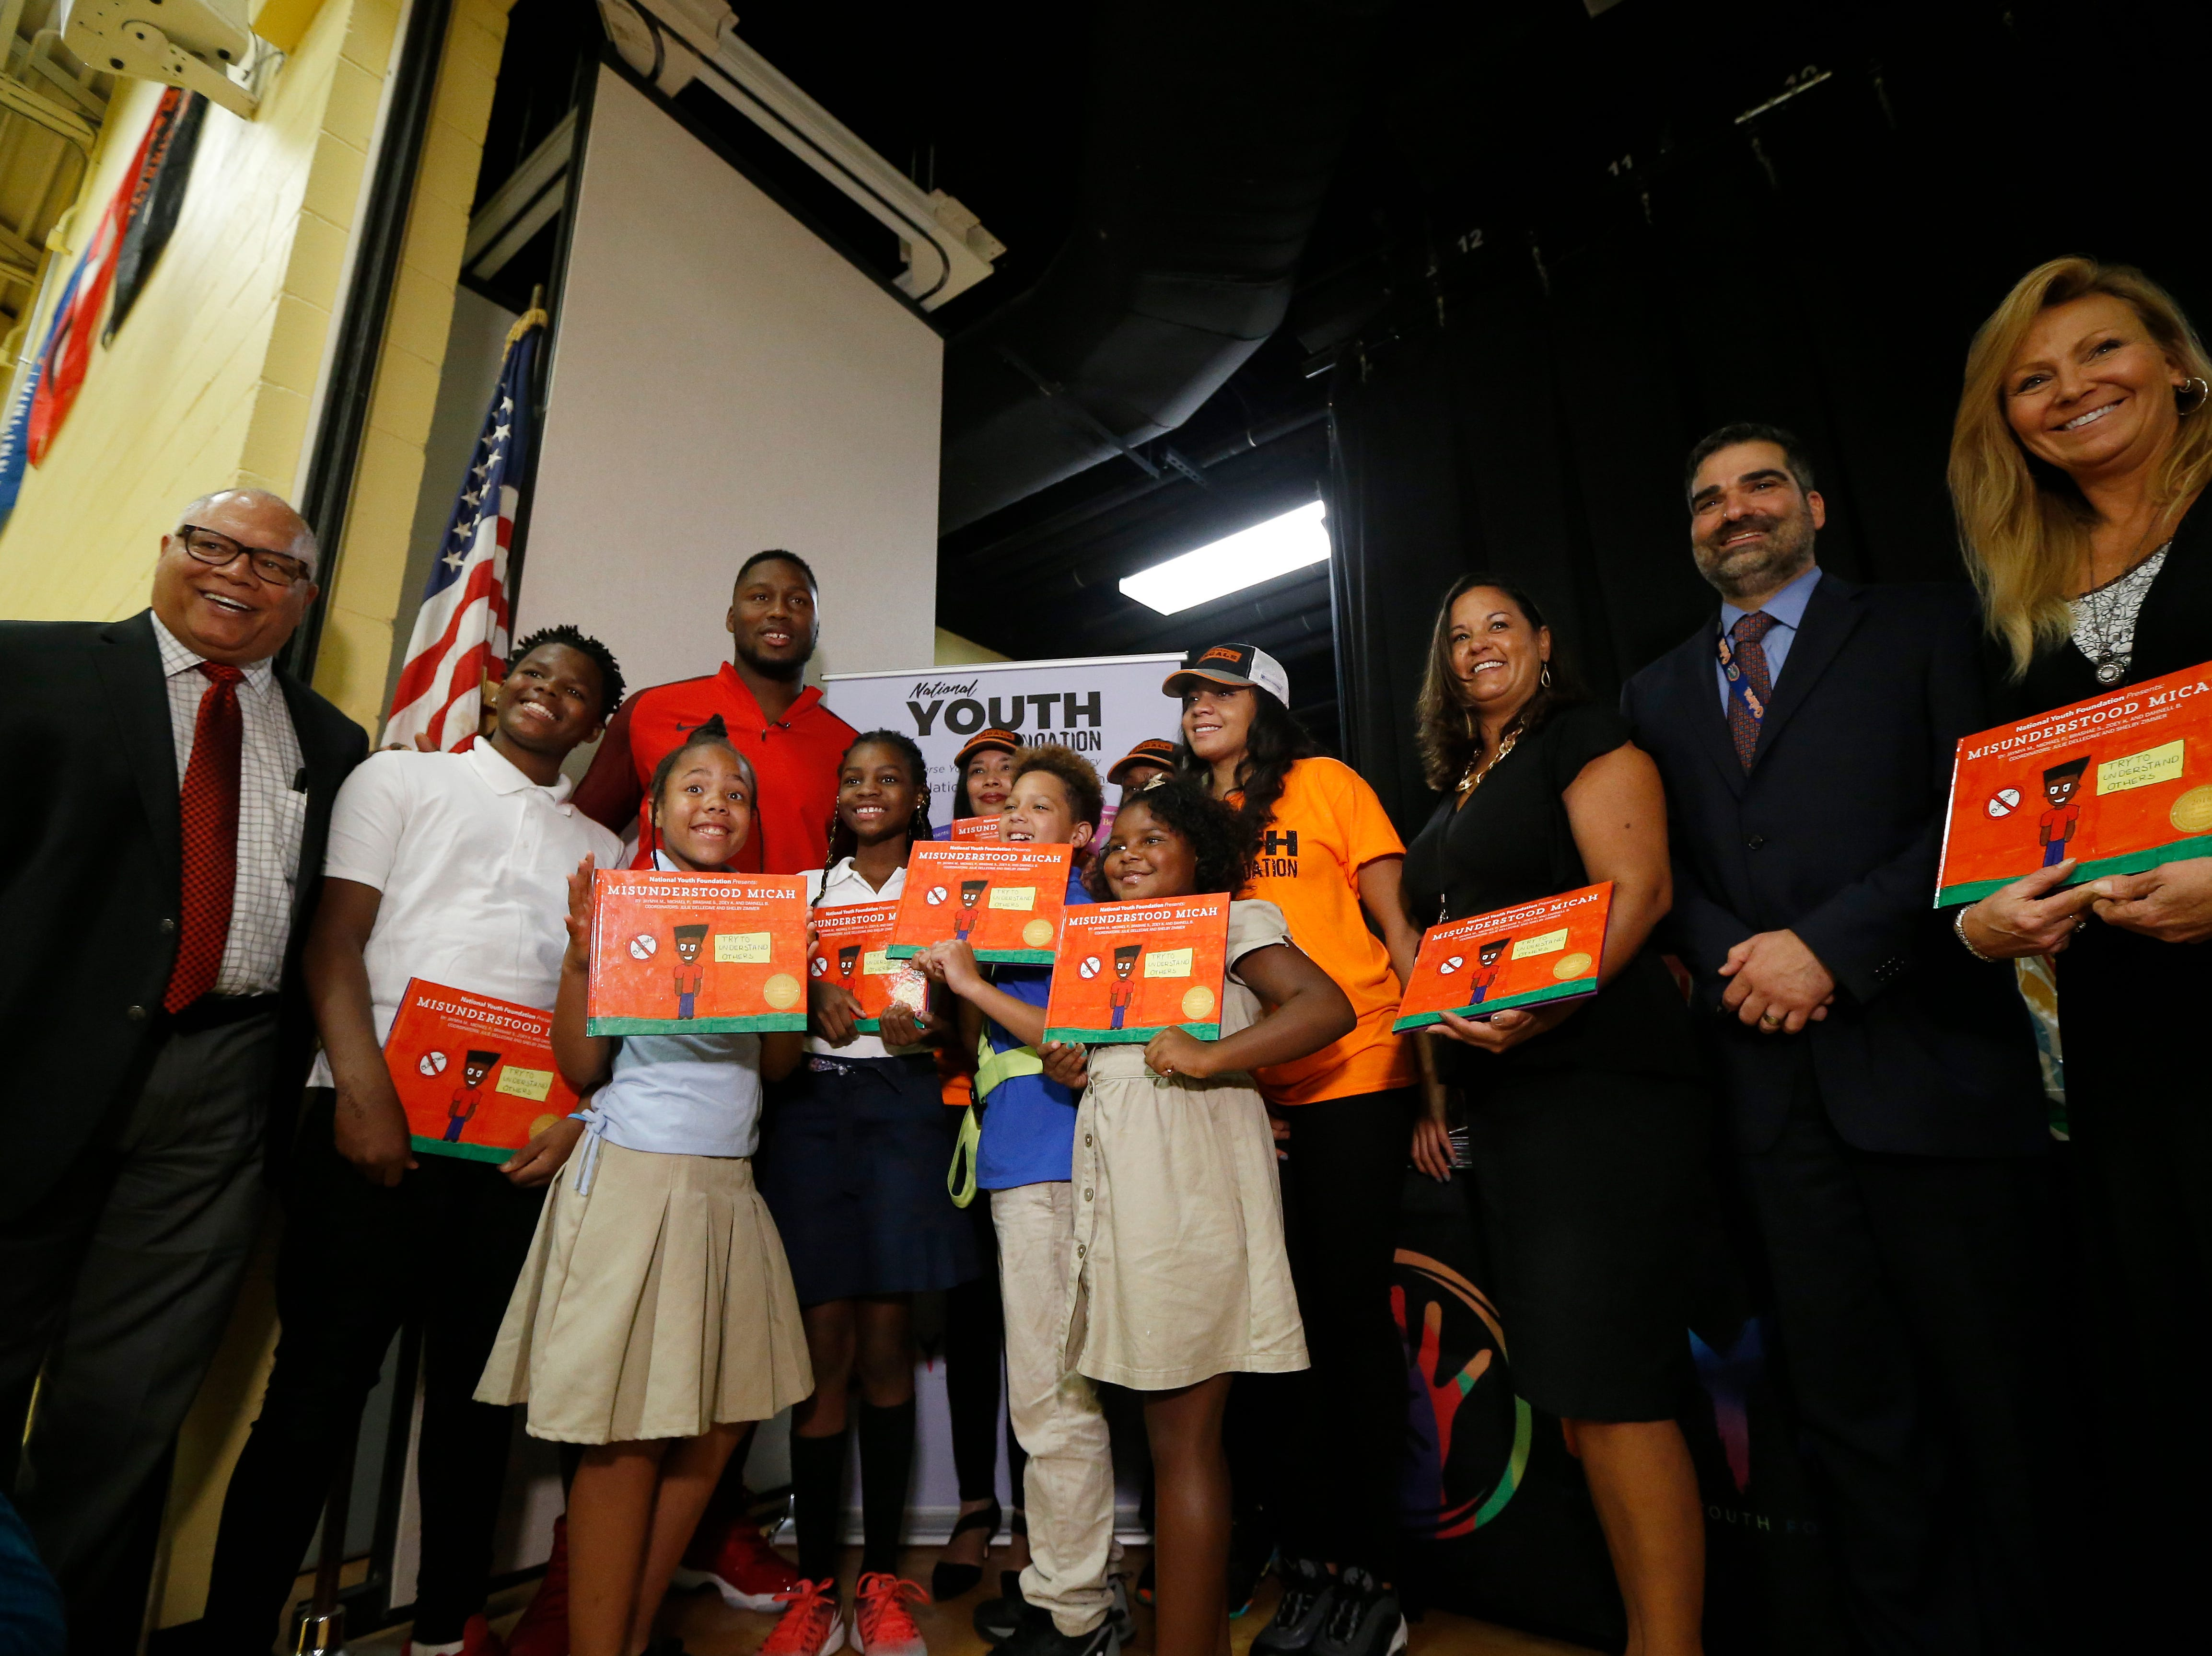 """Cincinnati Bengals defensive end Carlos Dunlap poses with the winning students during a surprise assembly at Winton Hills Academy in Cincinnati on Tuesday, Sept. 18, 2018. Five students of the academy were named winners, becoming published authors, of a national contest for a book about anti-bullying. The students' book, """"Misunderstanding Micah"""" was selected as the winner of the 2018 National Student Book Scholar Competition by The National Youth Foundation."""